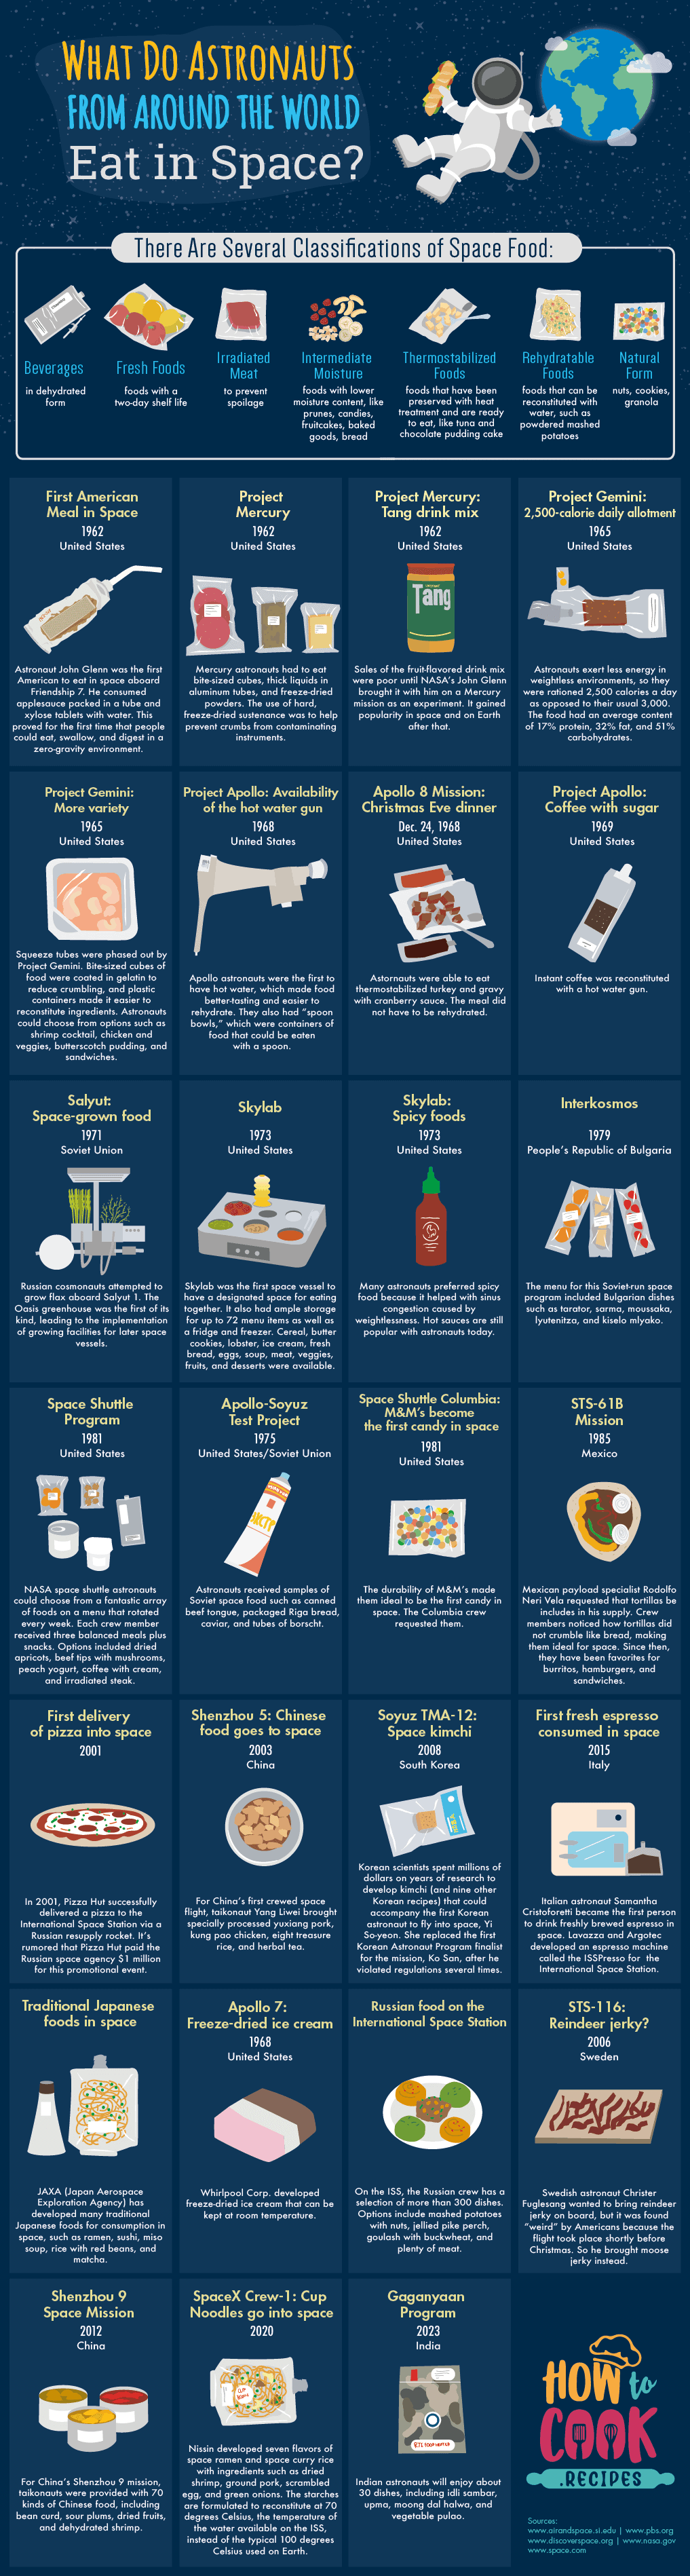 What do Astronauts Eat in Space